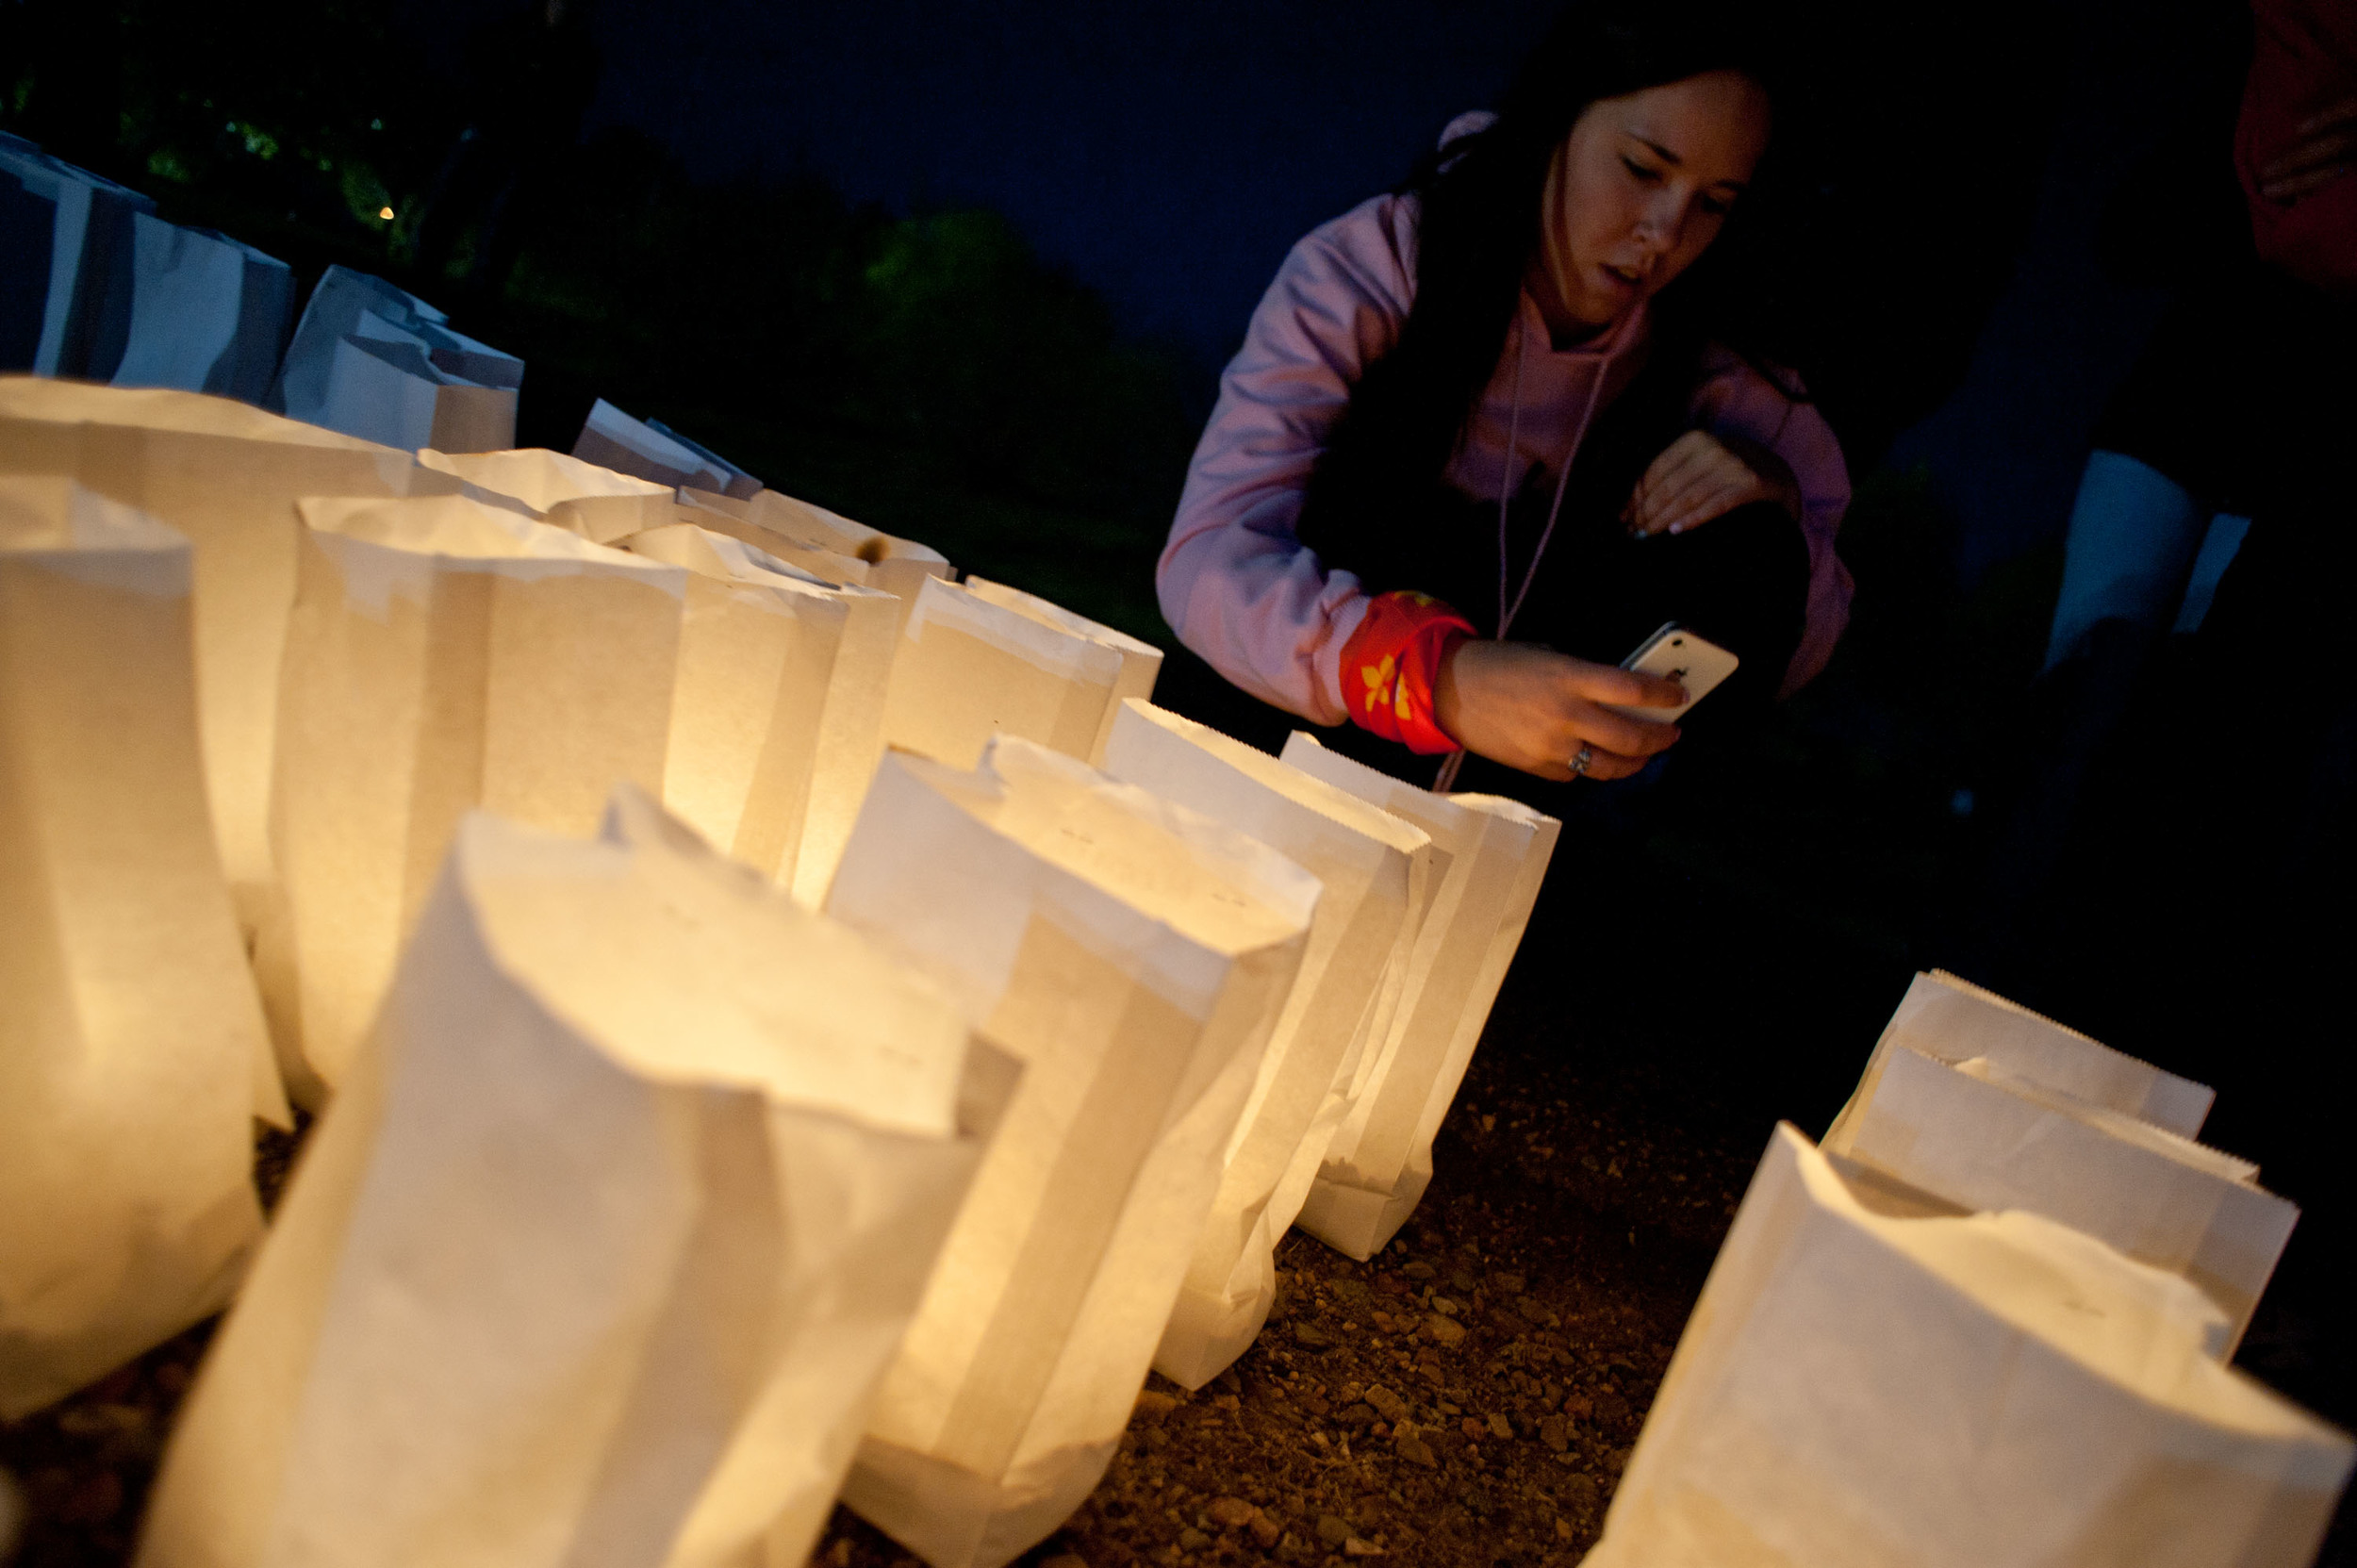 Luminaries are lit up along the waters of the lake in Bud Miller Park during the Lloydminster Relay for Life. Friday May 30, 2014. James Wood/Lloydminster Meridian Booster/QMI Agency